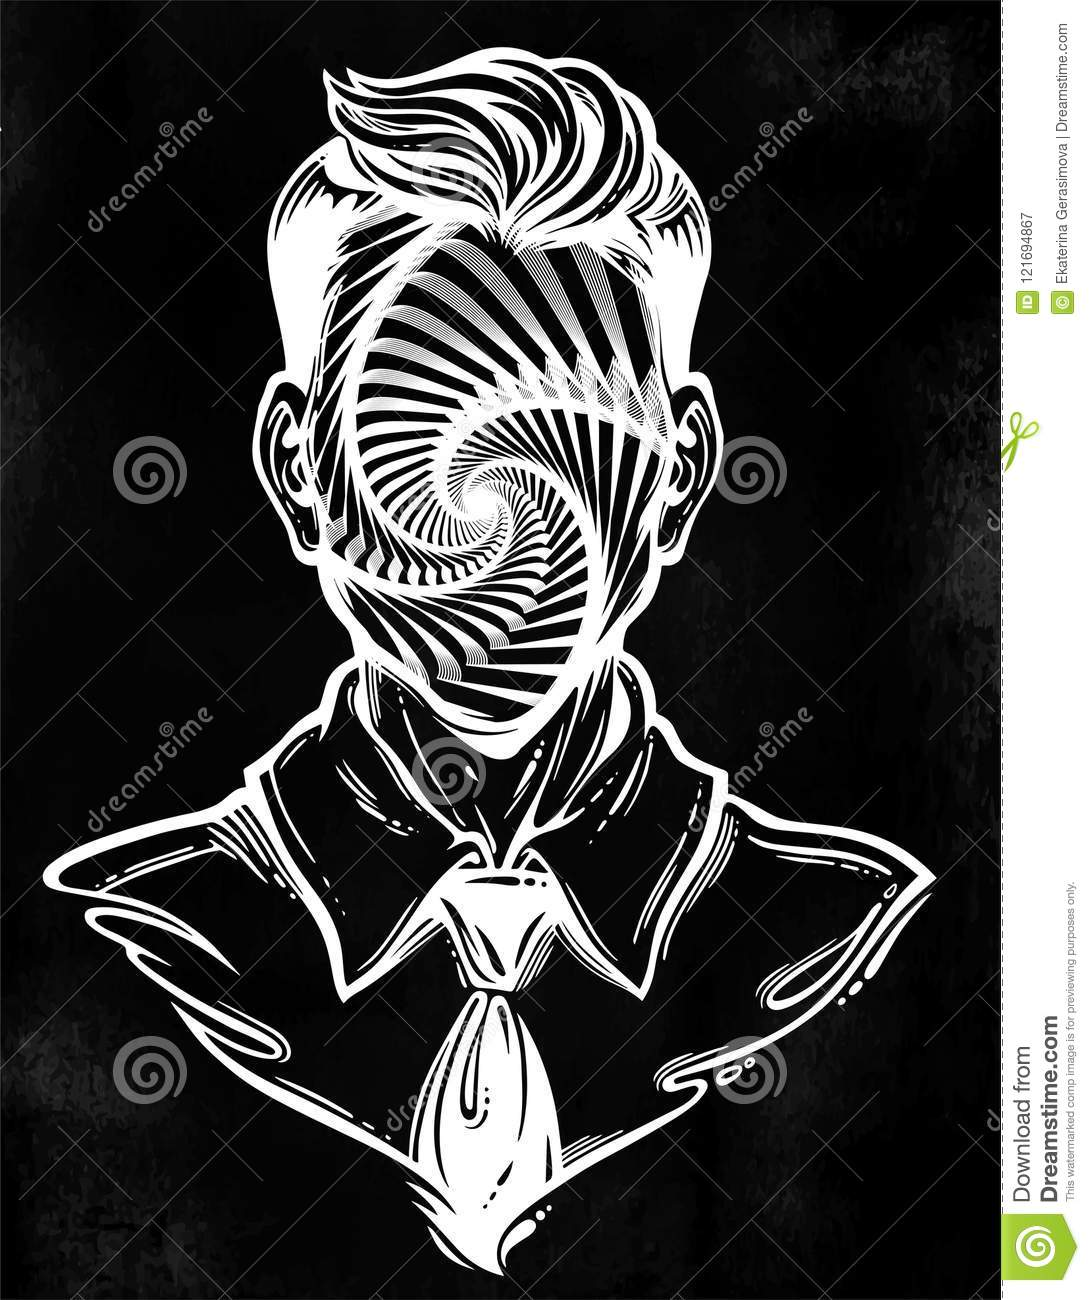 portrait of a weird man with anonymous face noir retro style with